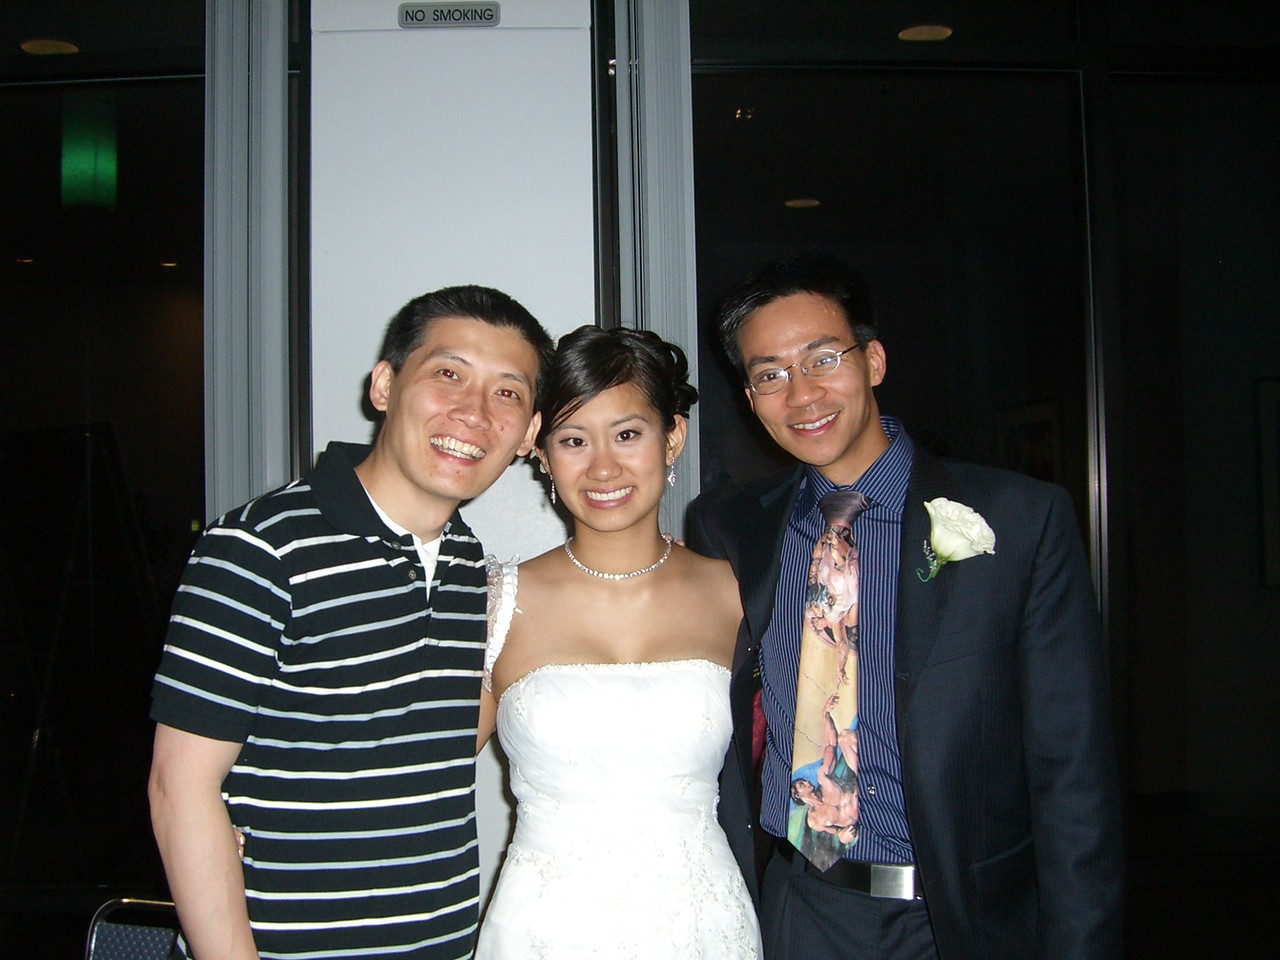 2006 06 18 Sun - Mike & Brittany Chen, and Ben Yu